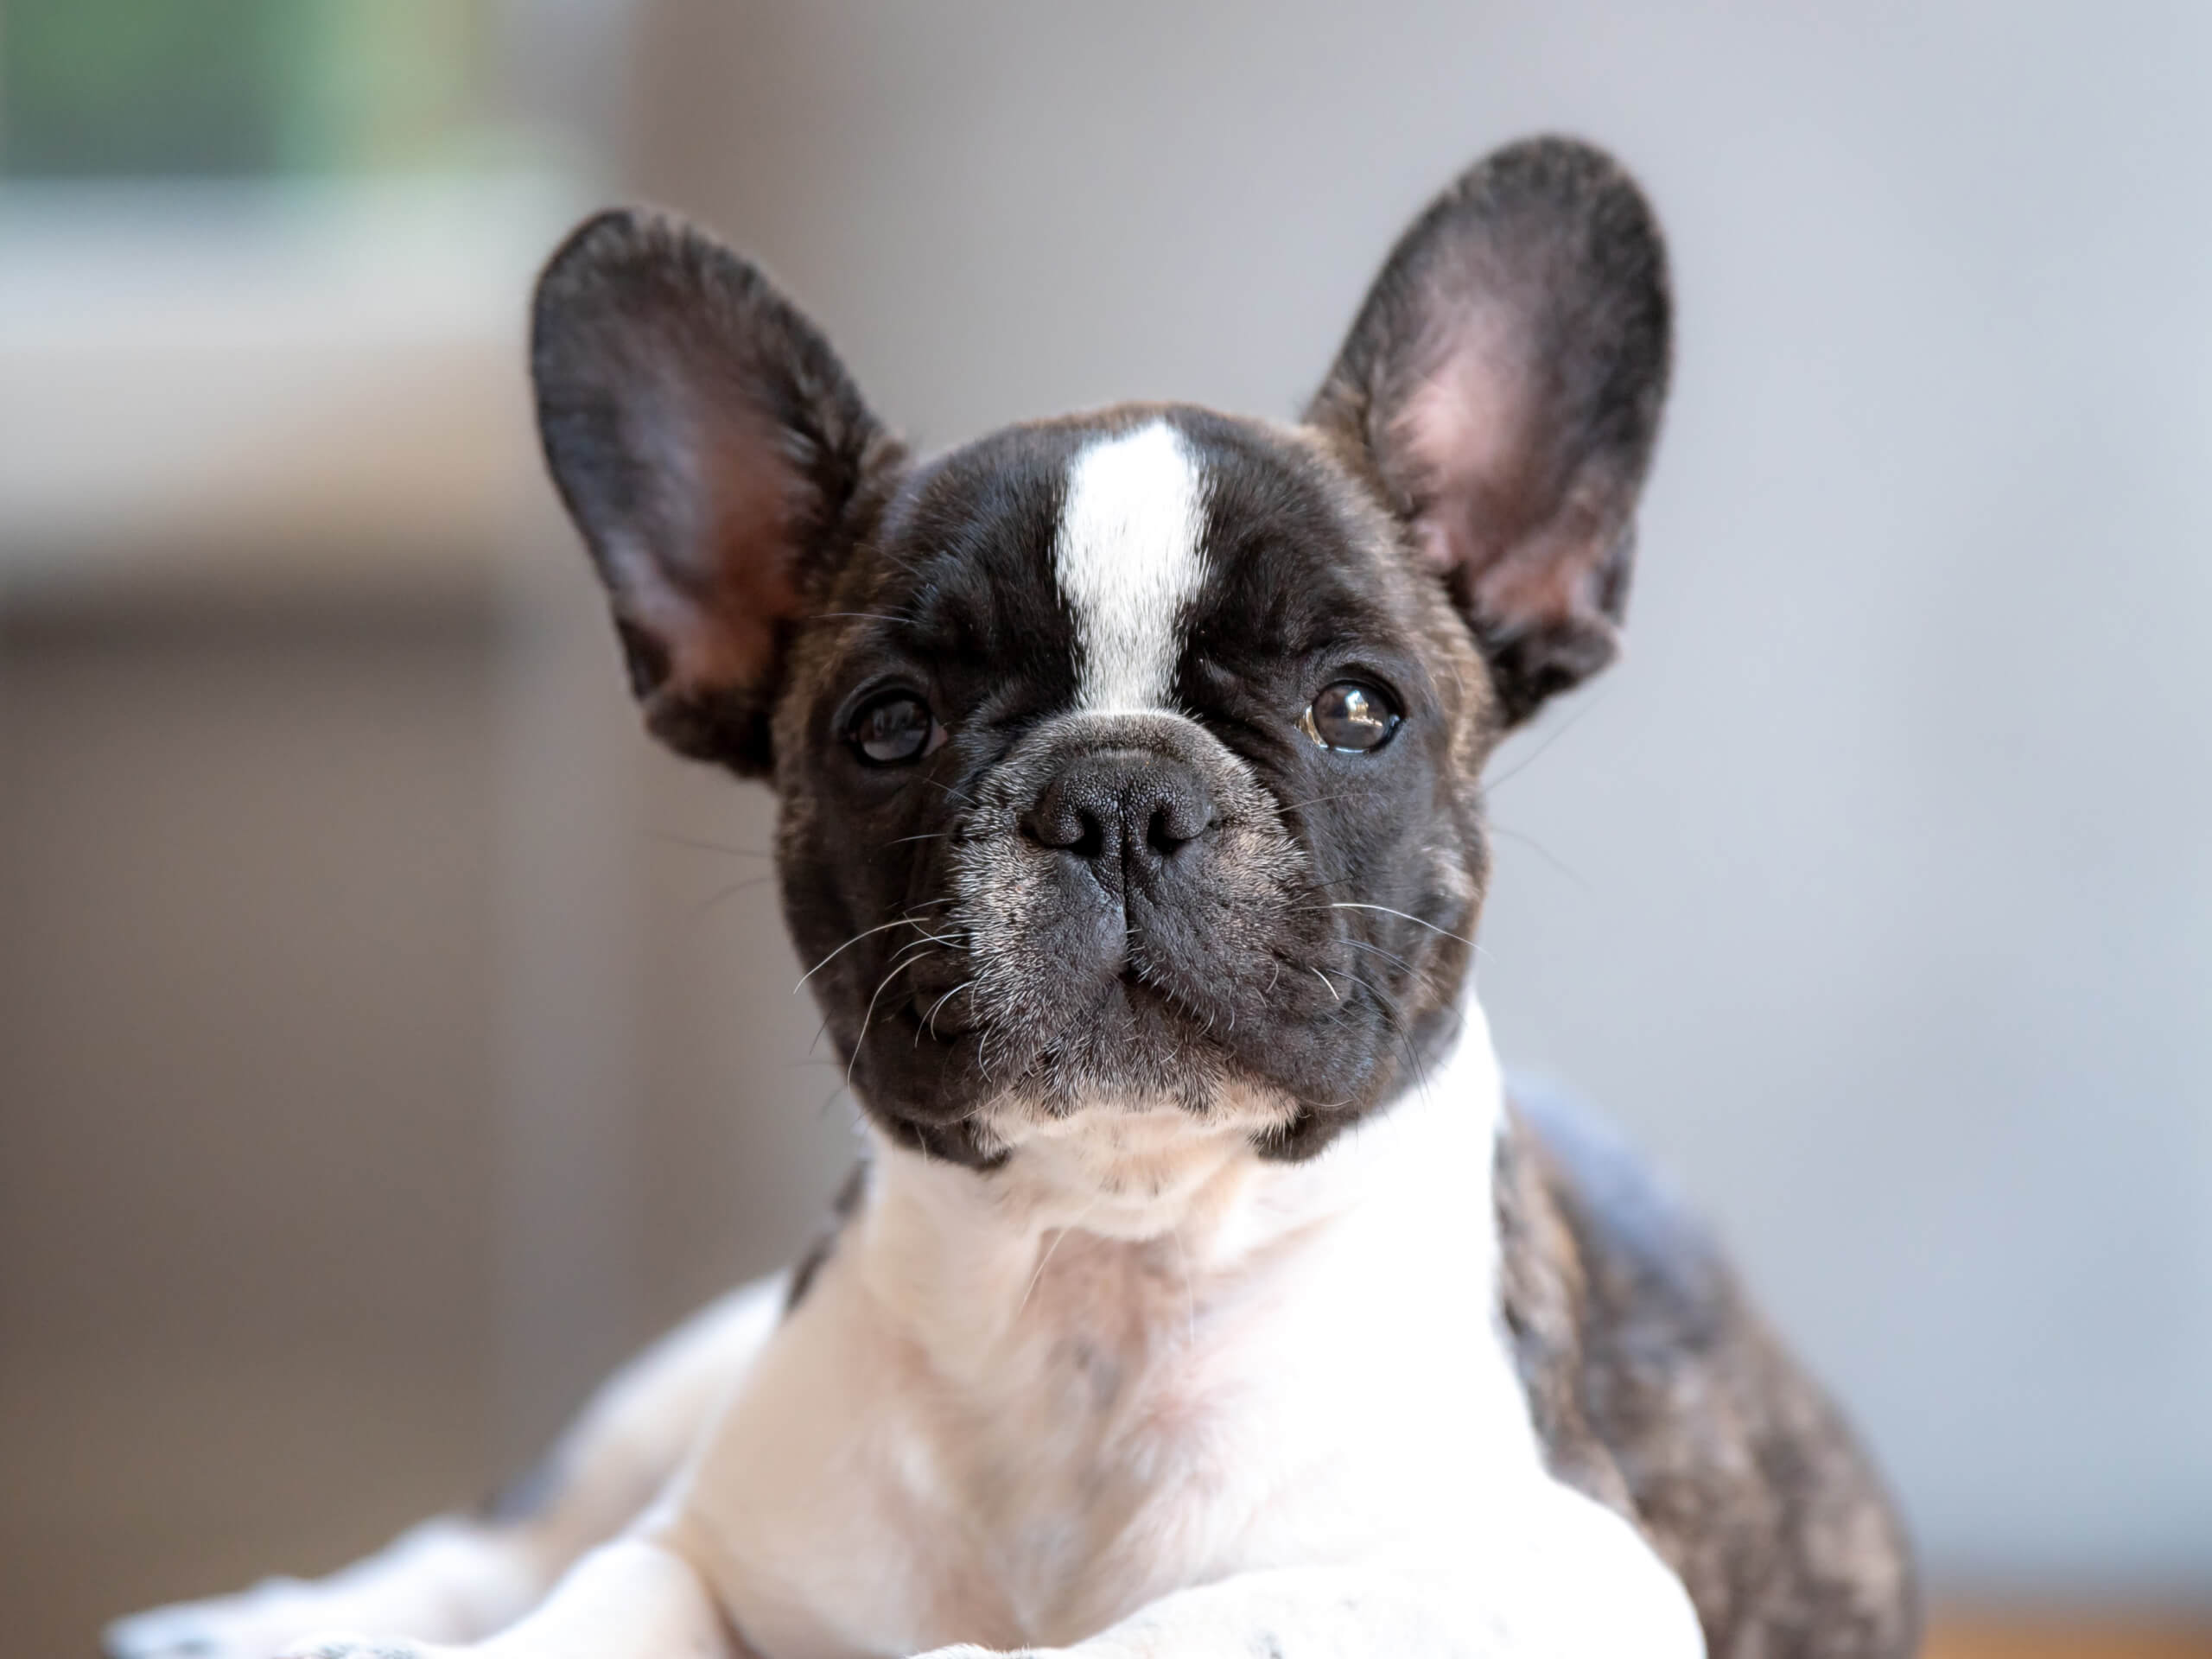 French Bulldog puppy learning to potty train